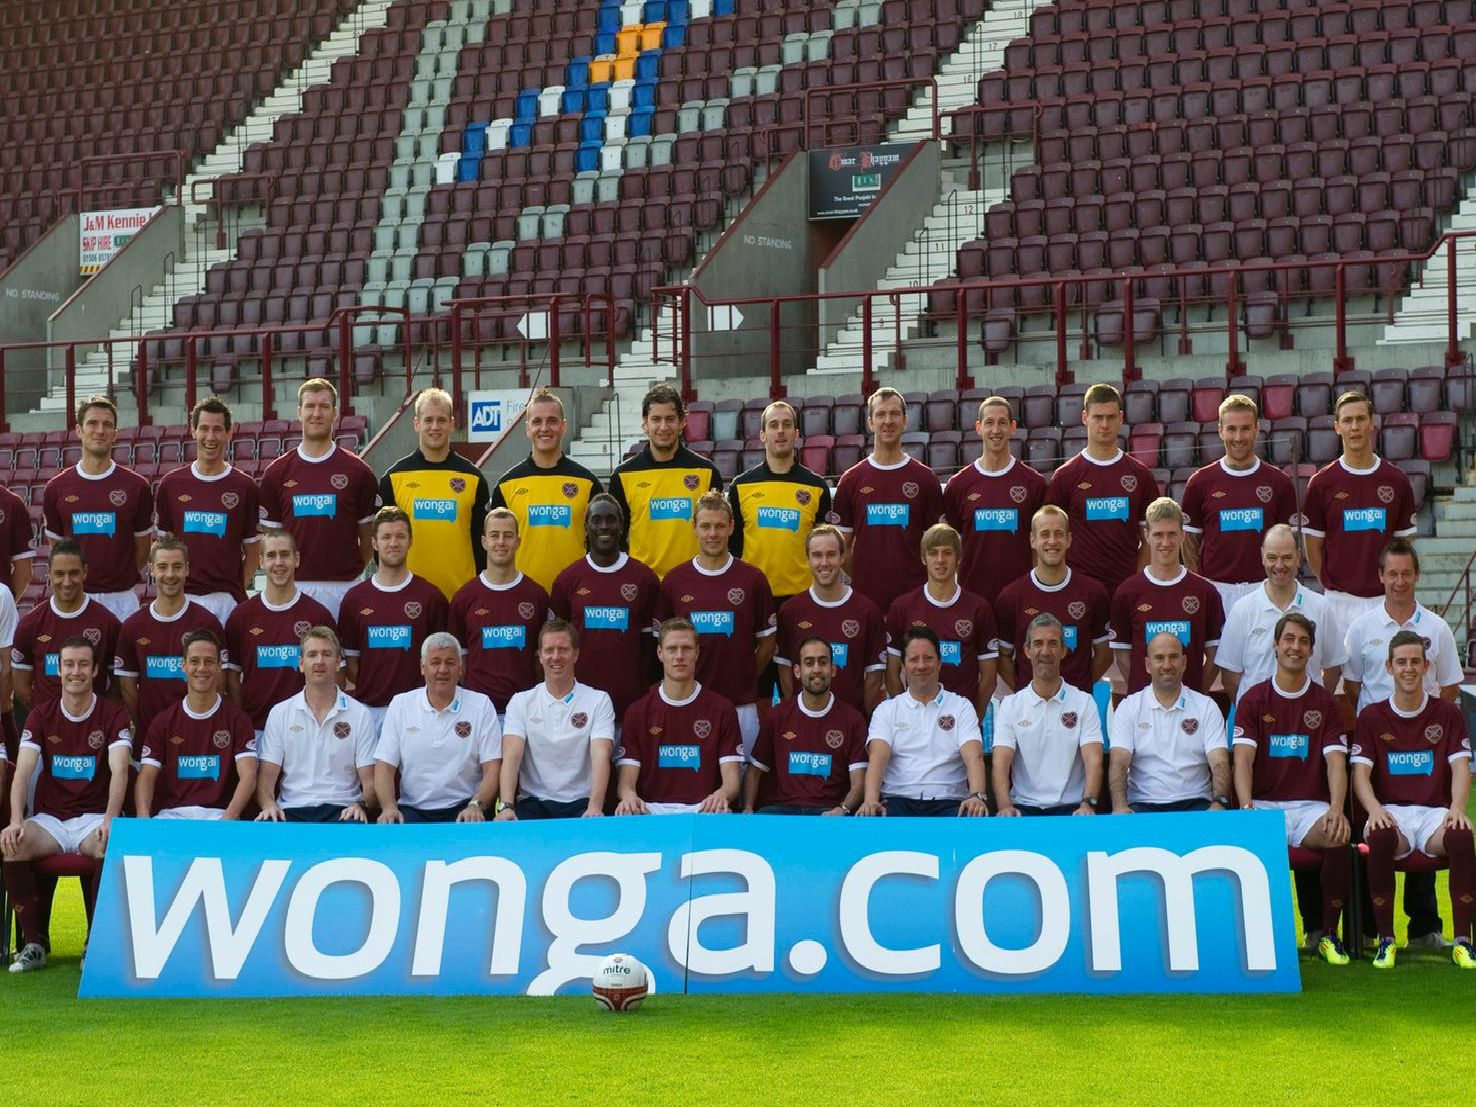 The Hearts first-team squad pictured at the start of the 2011/12 season